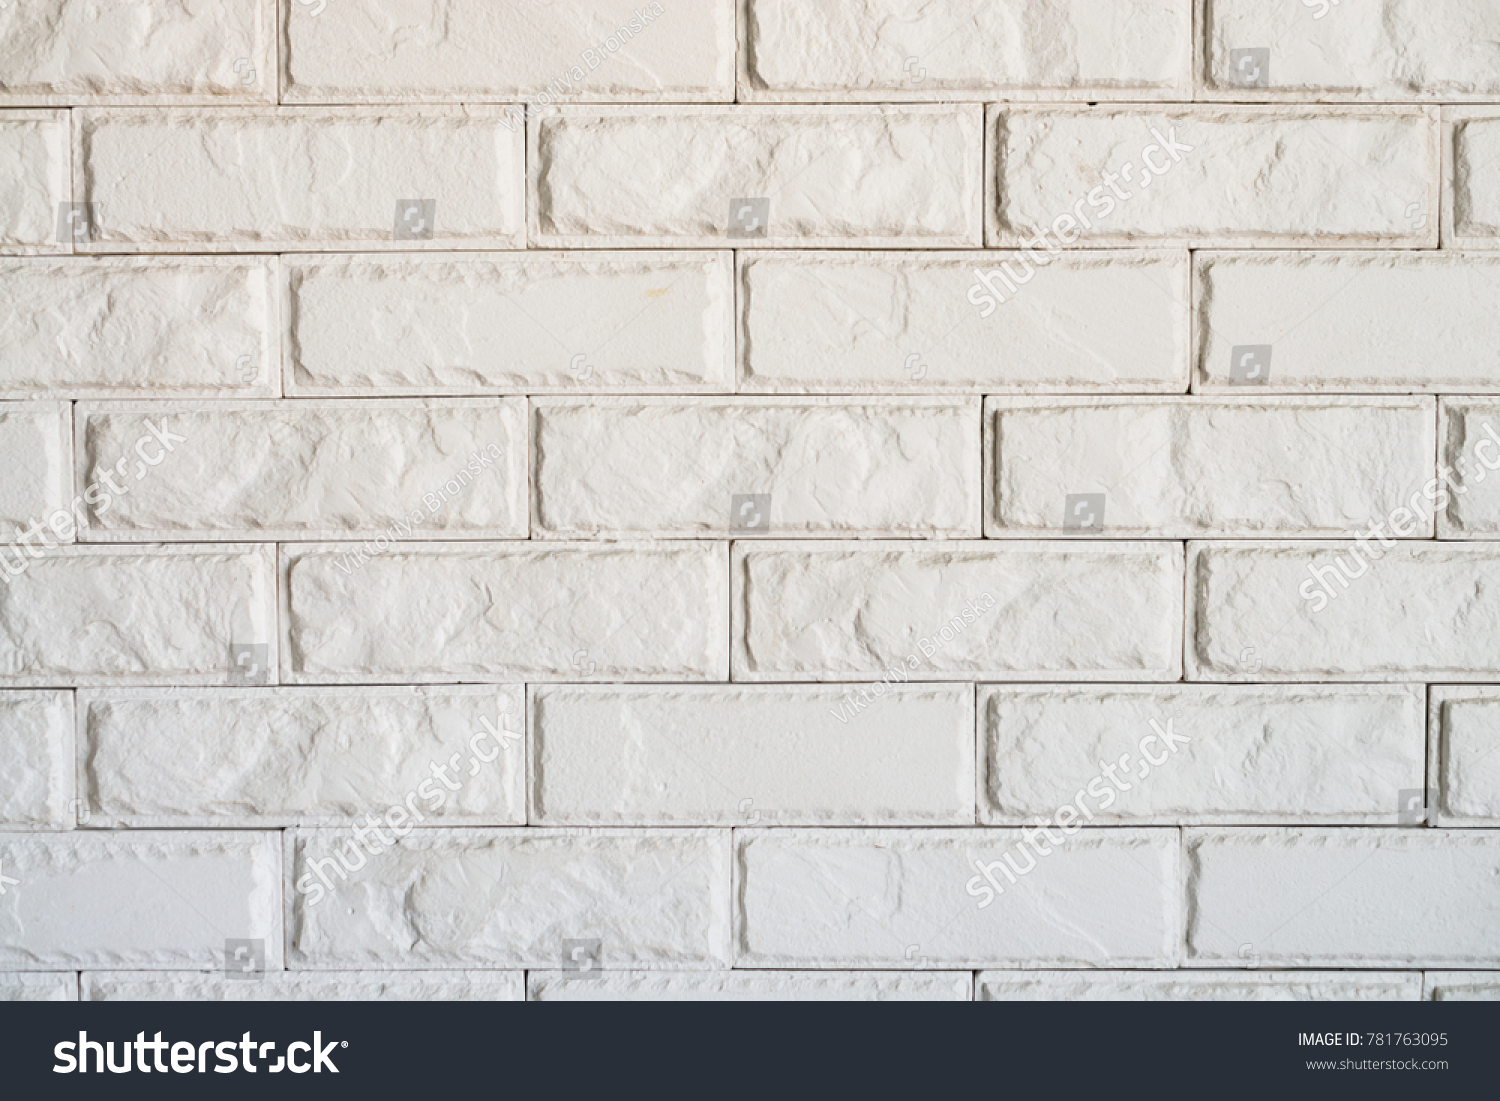 Adding Brick Wall Interior White Brick Wall Texture Background Cement Stock Photo Edit Now